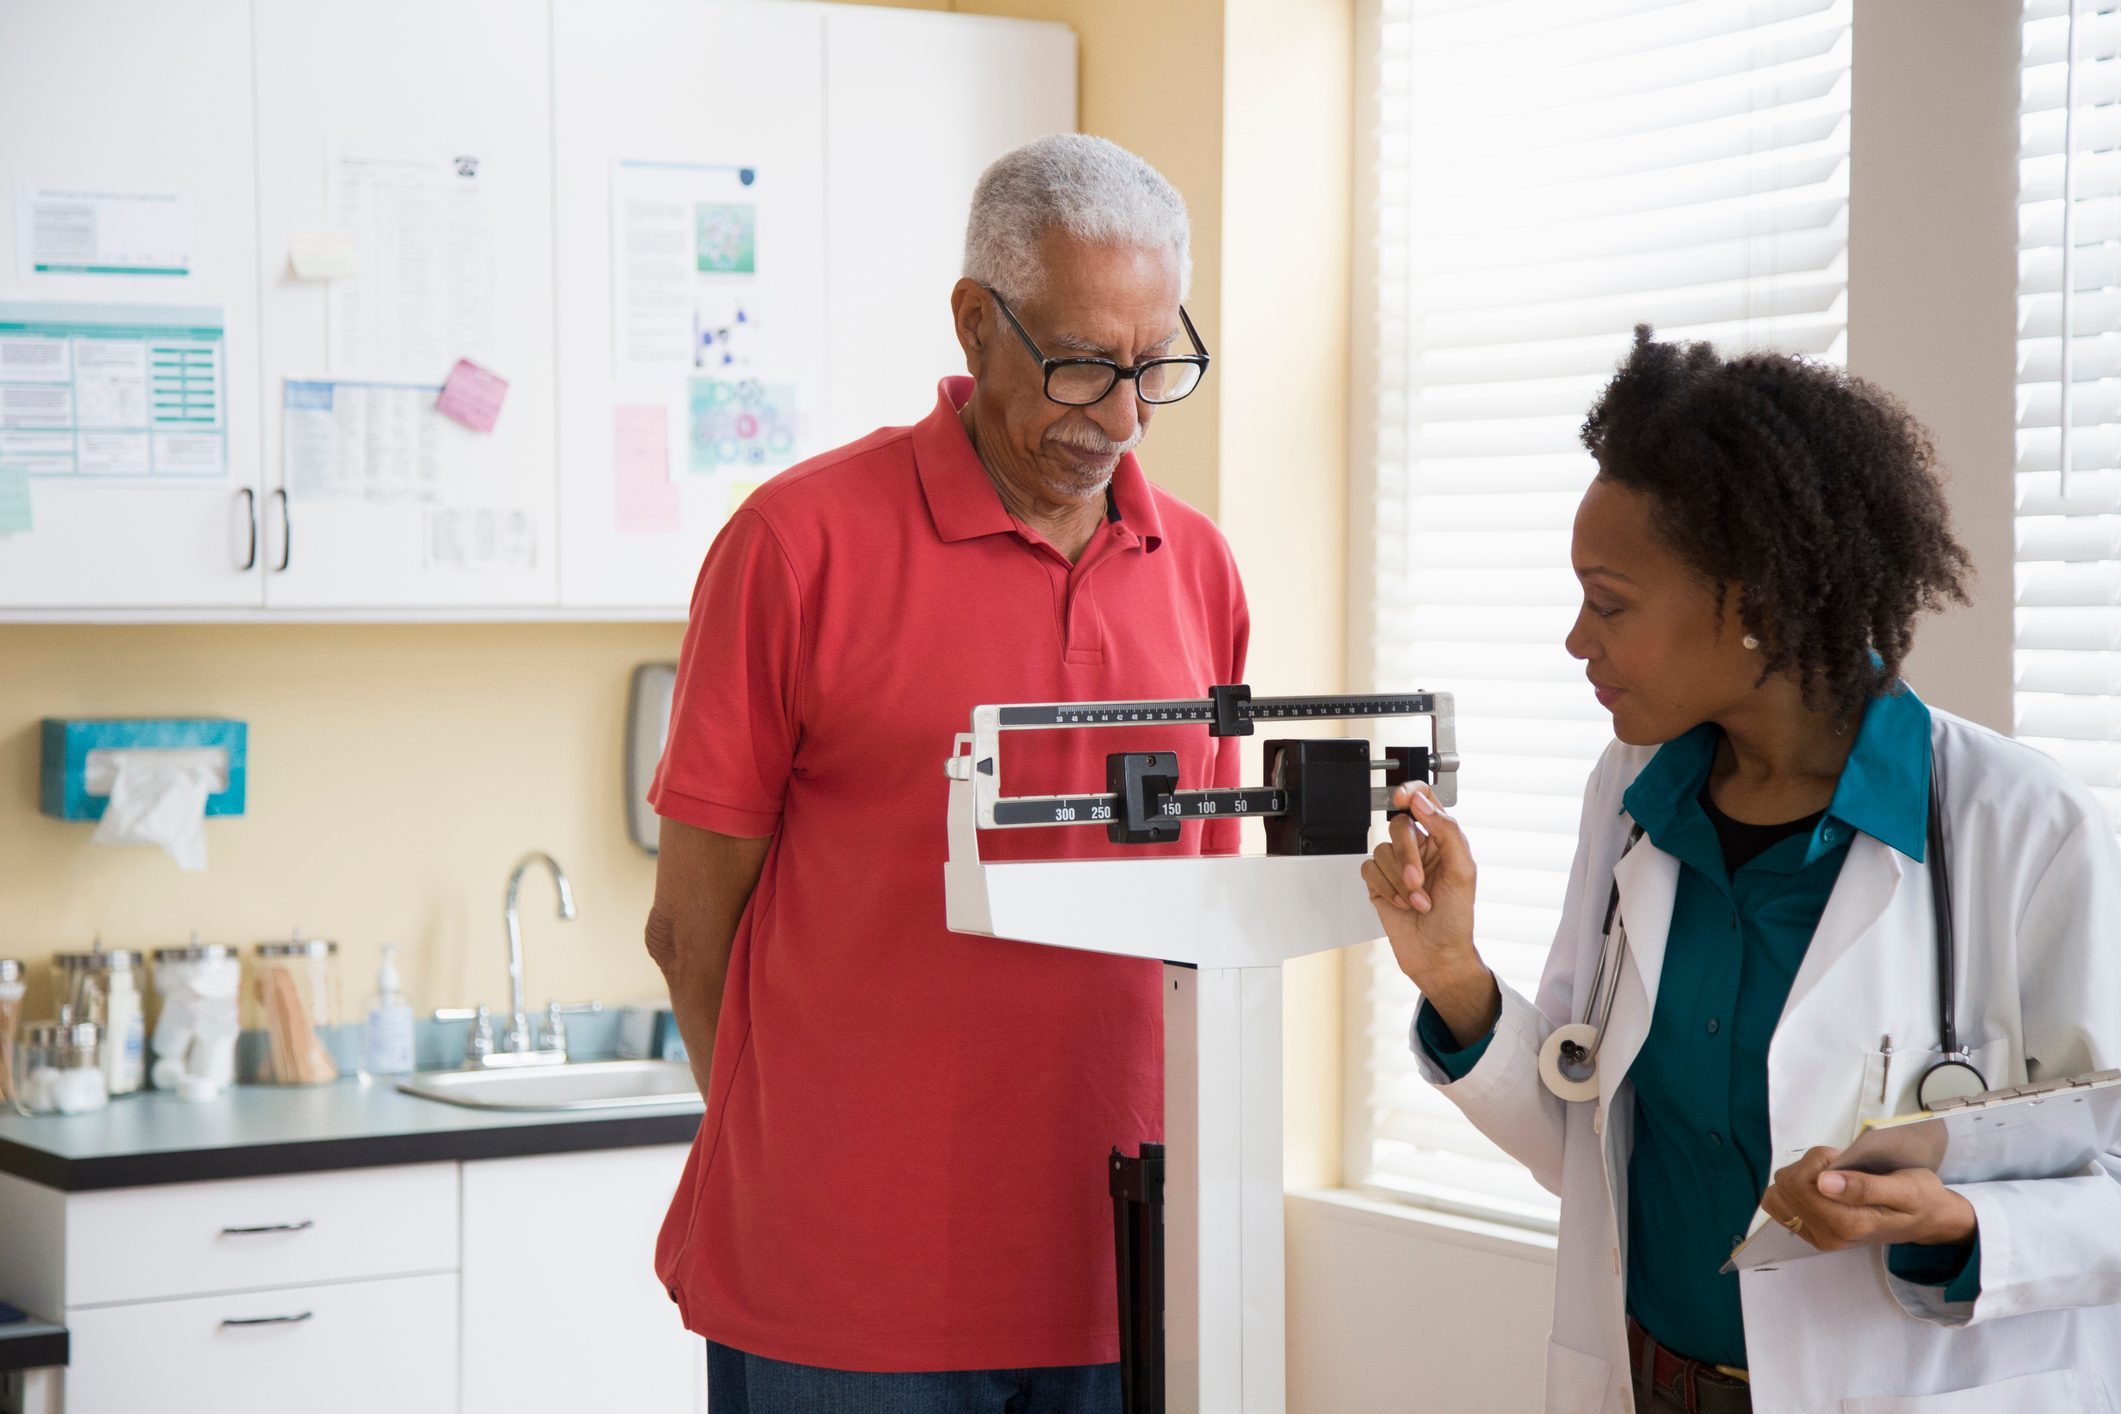 senior man standing on weight scale at the doctor